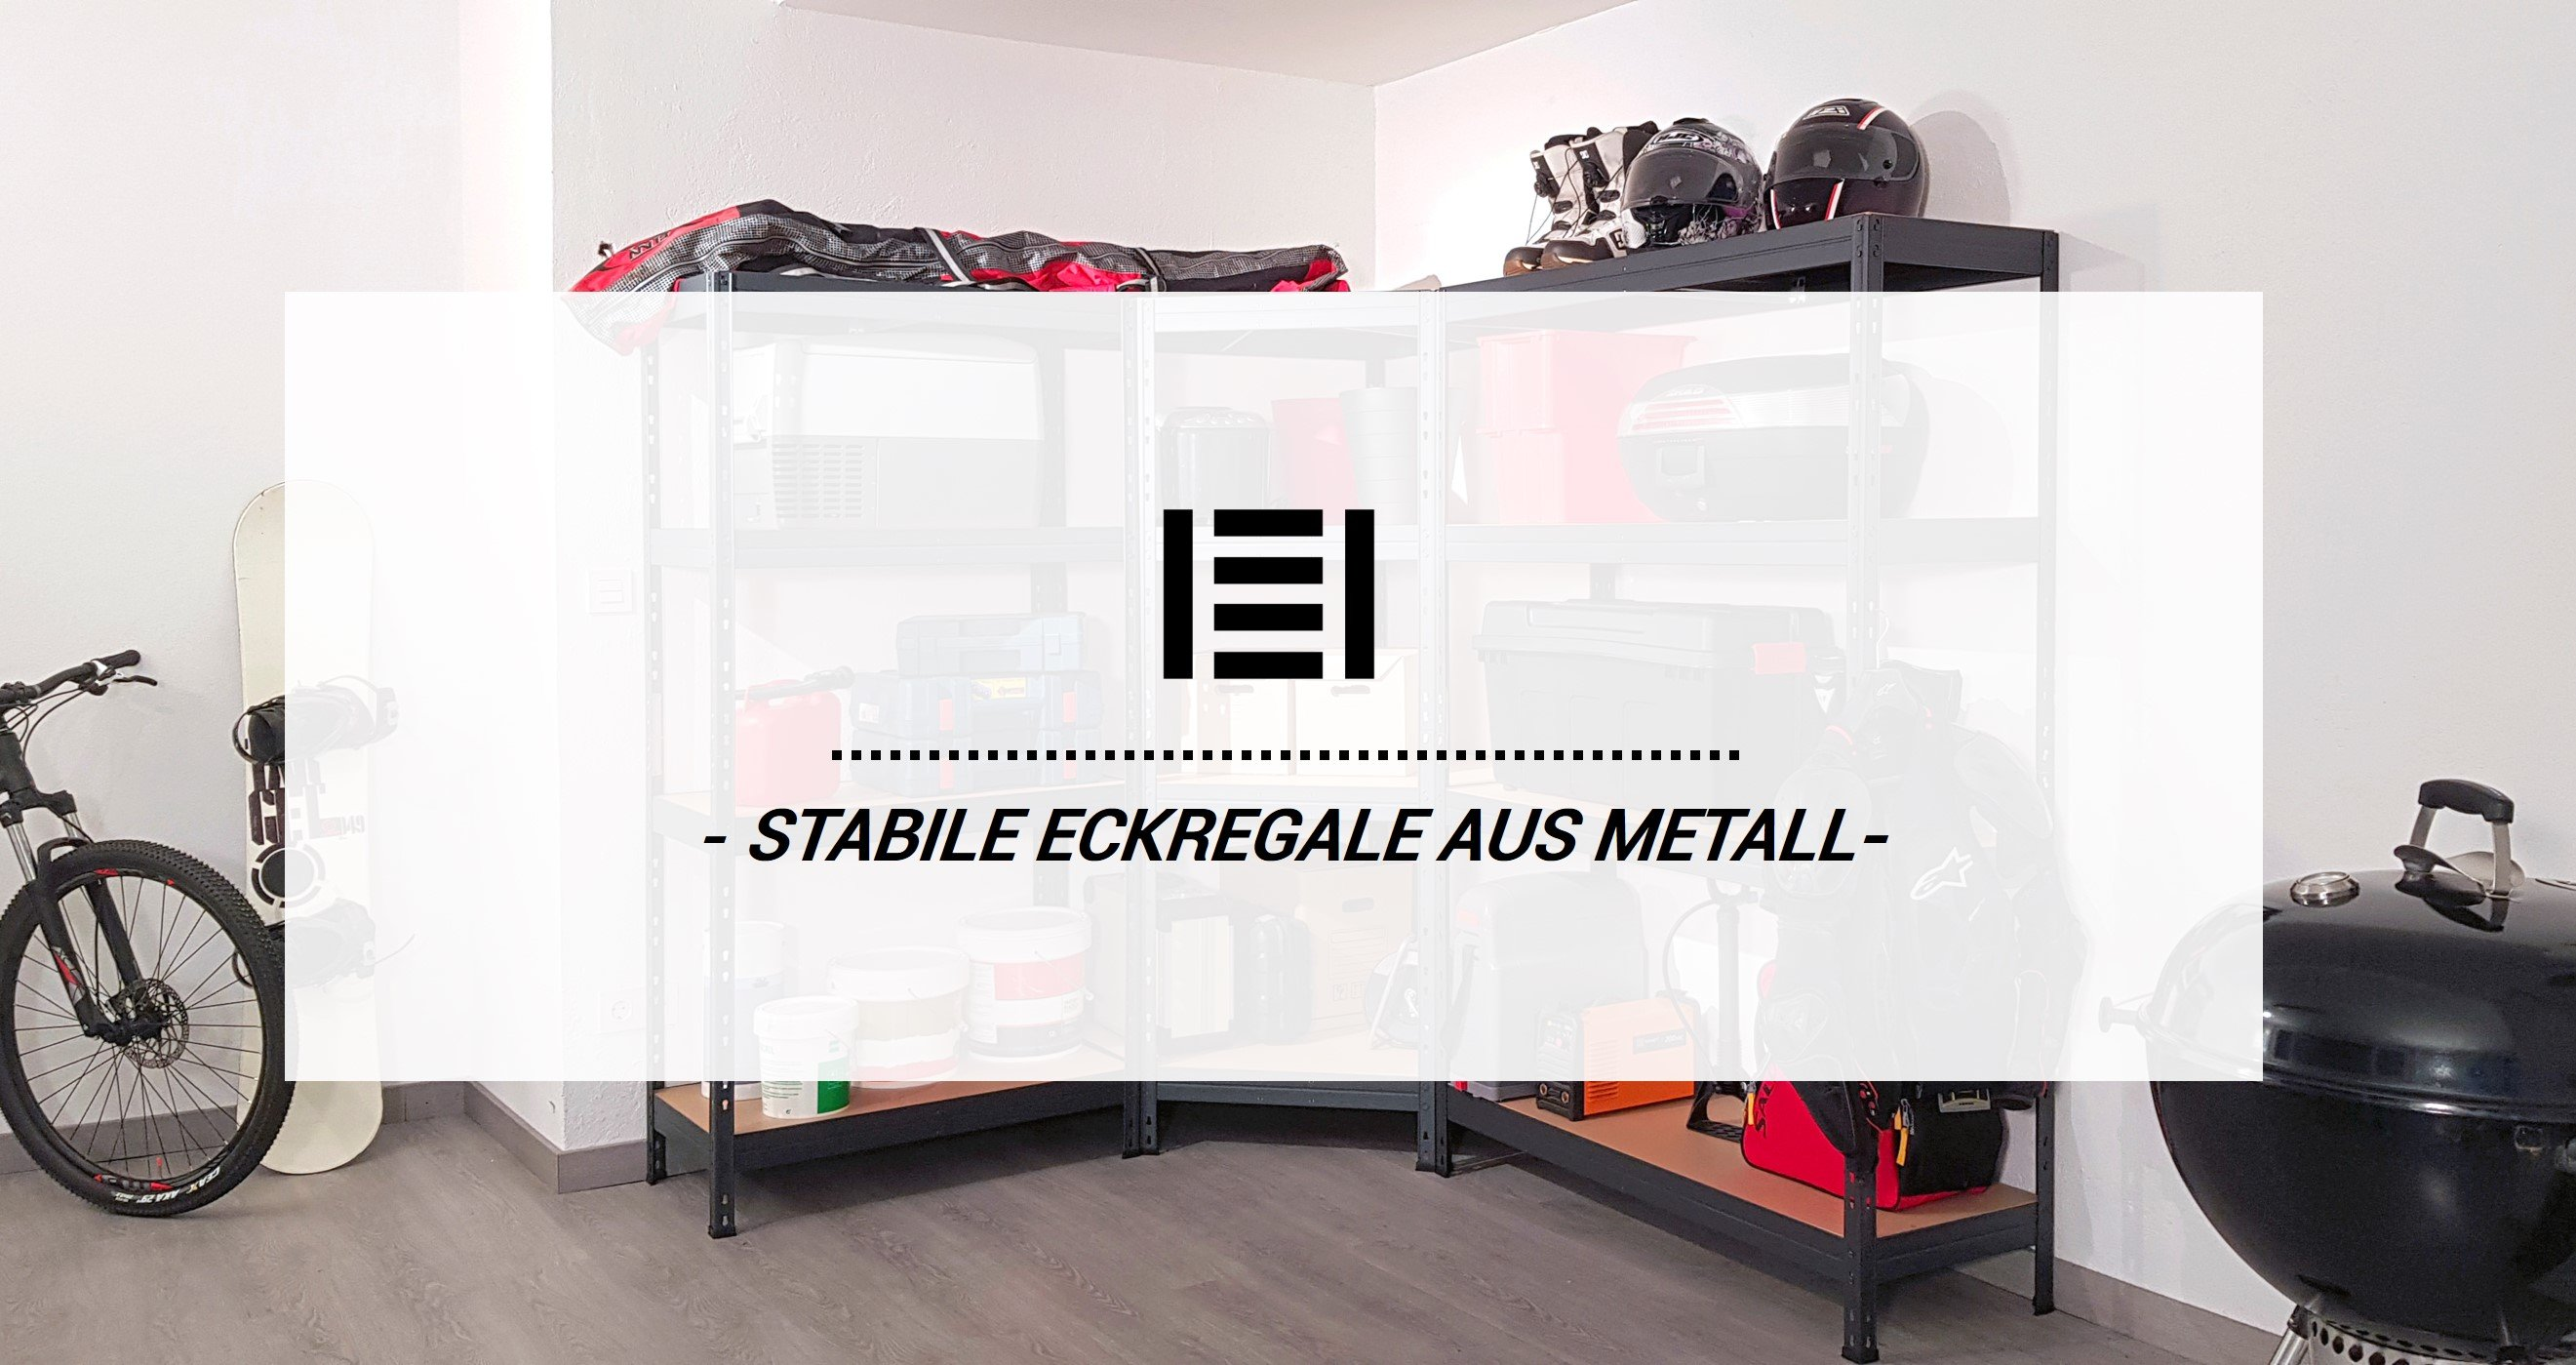 Unsere Newcomer - Stabile Eckregale aus Metall | Master Regale